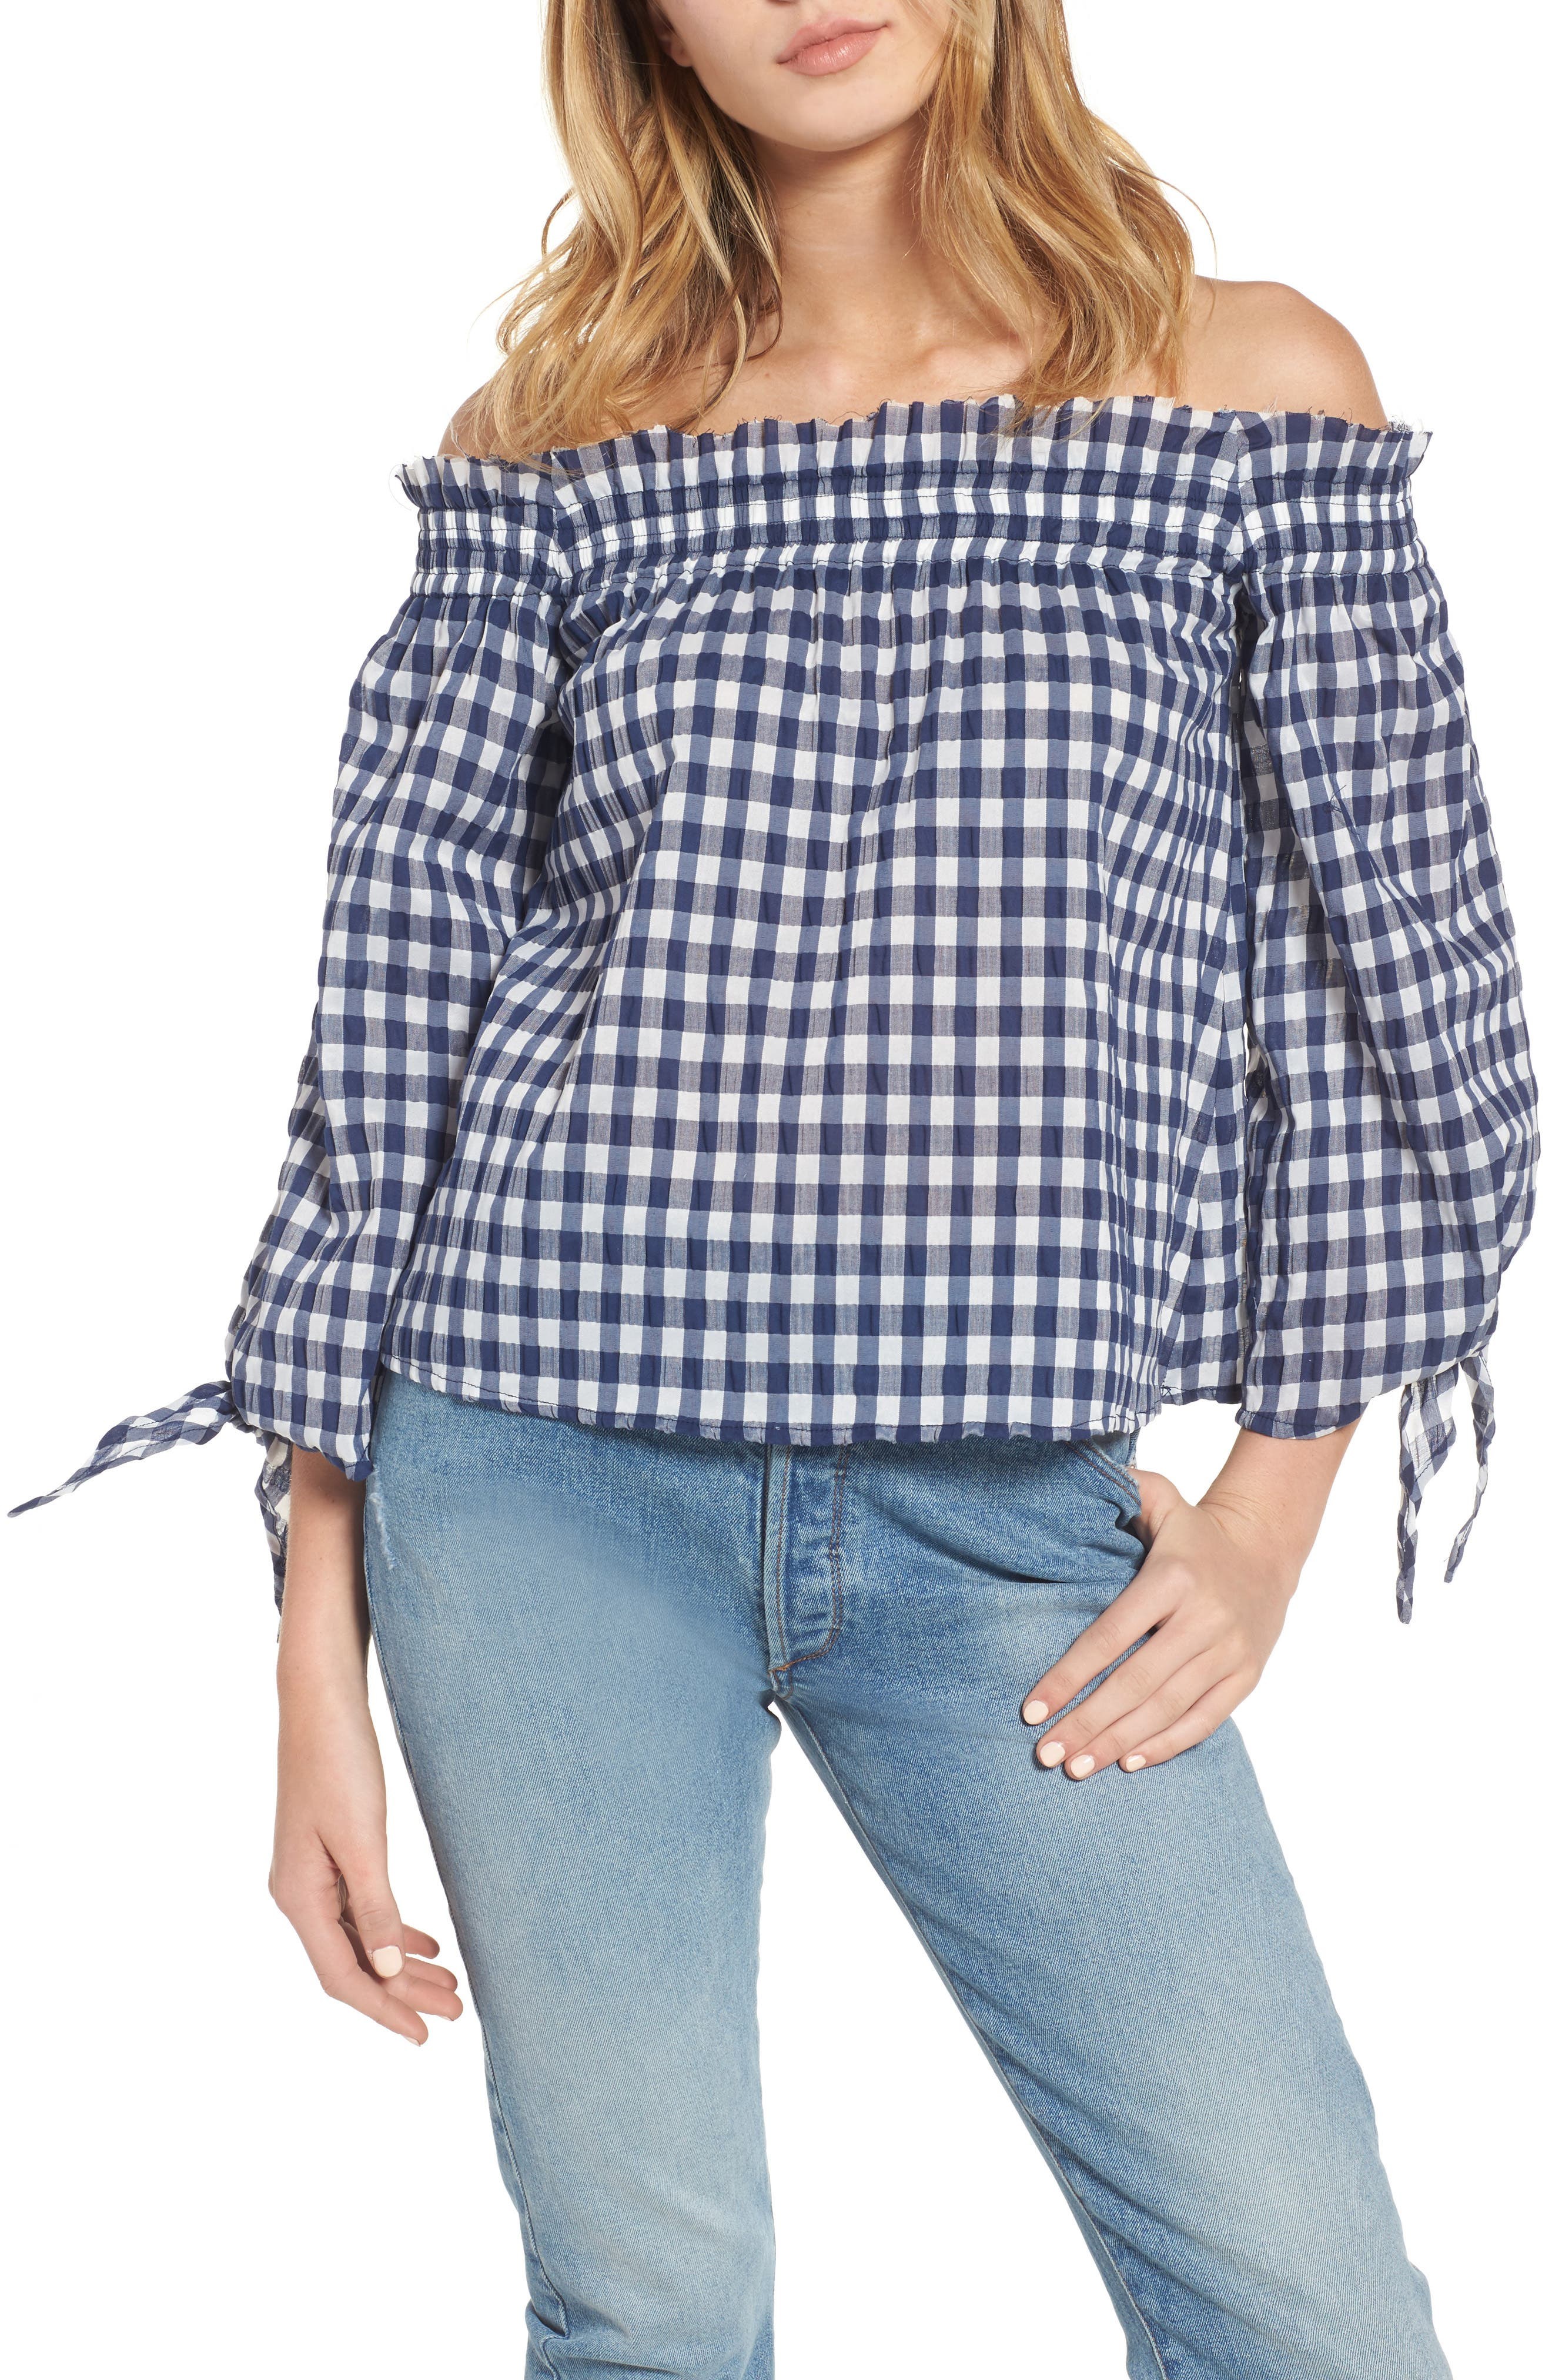 Main Image - McGuire Pina Gingham Off the Shoulder Top